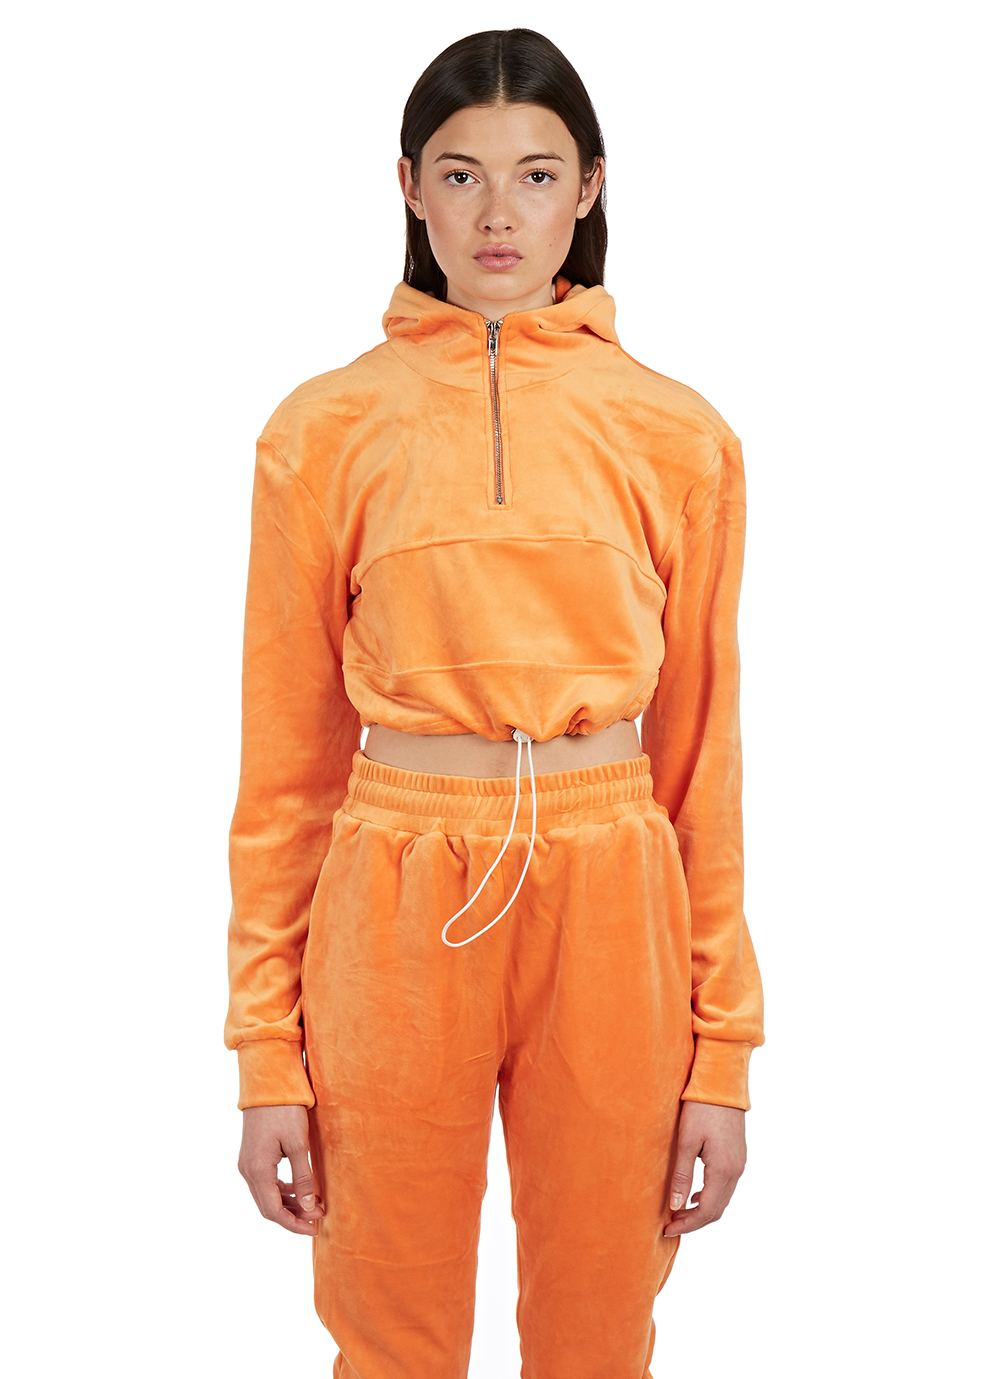 Pt2 Velour Tracksuit in Orange by Danielle Guizio, available on hbx.com for $118 Kylie Jenner Top Exact Product